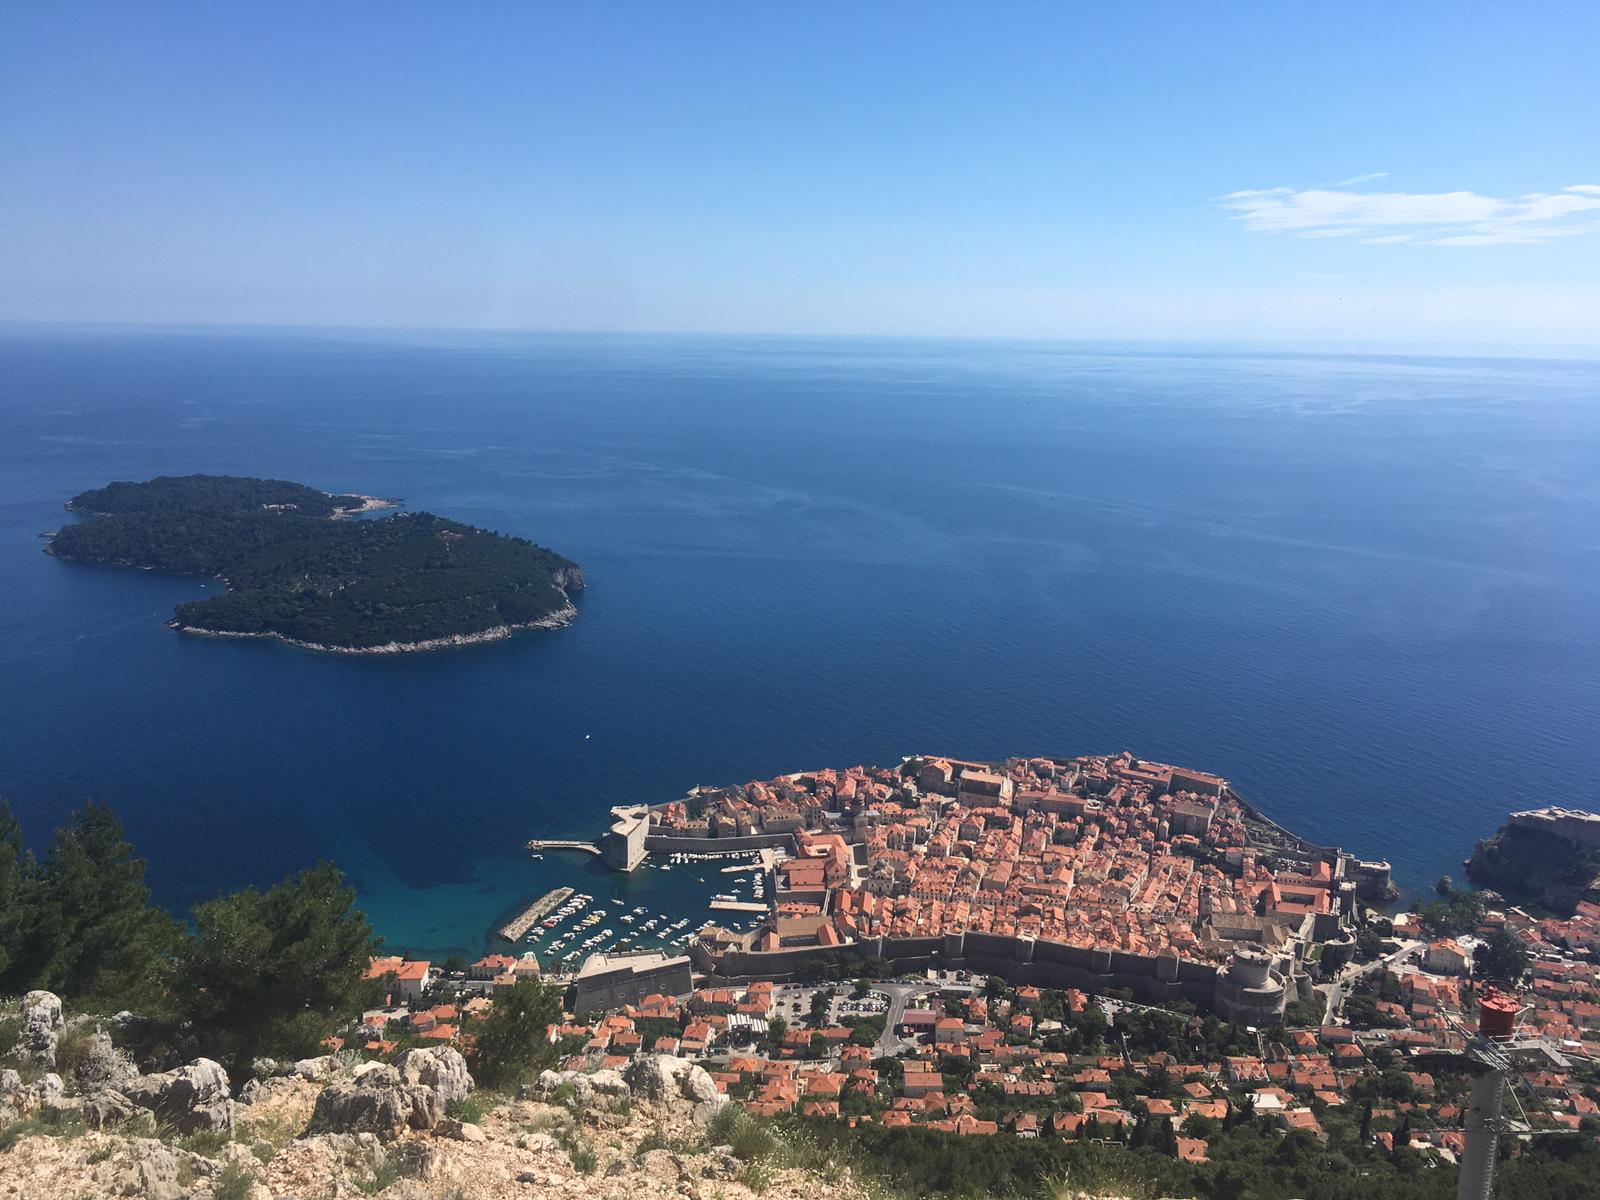 View of Dubrovnik from Mount Srđ